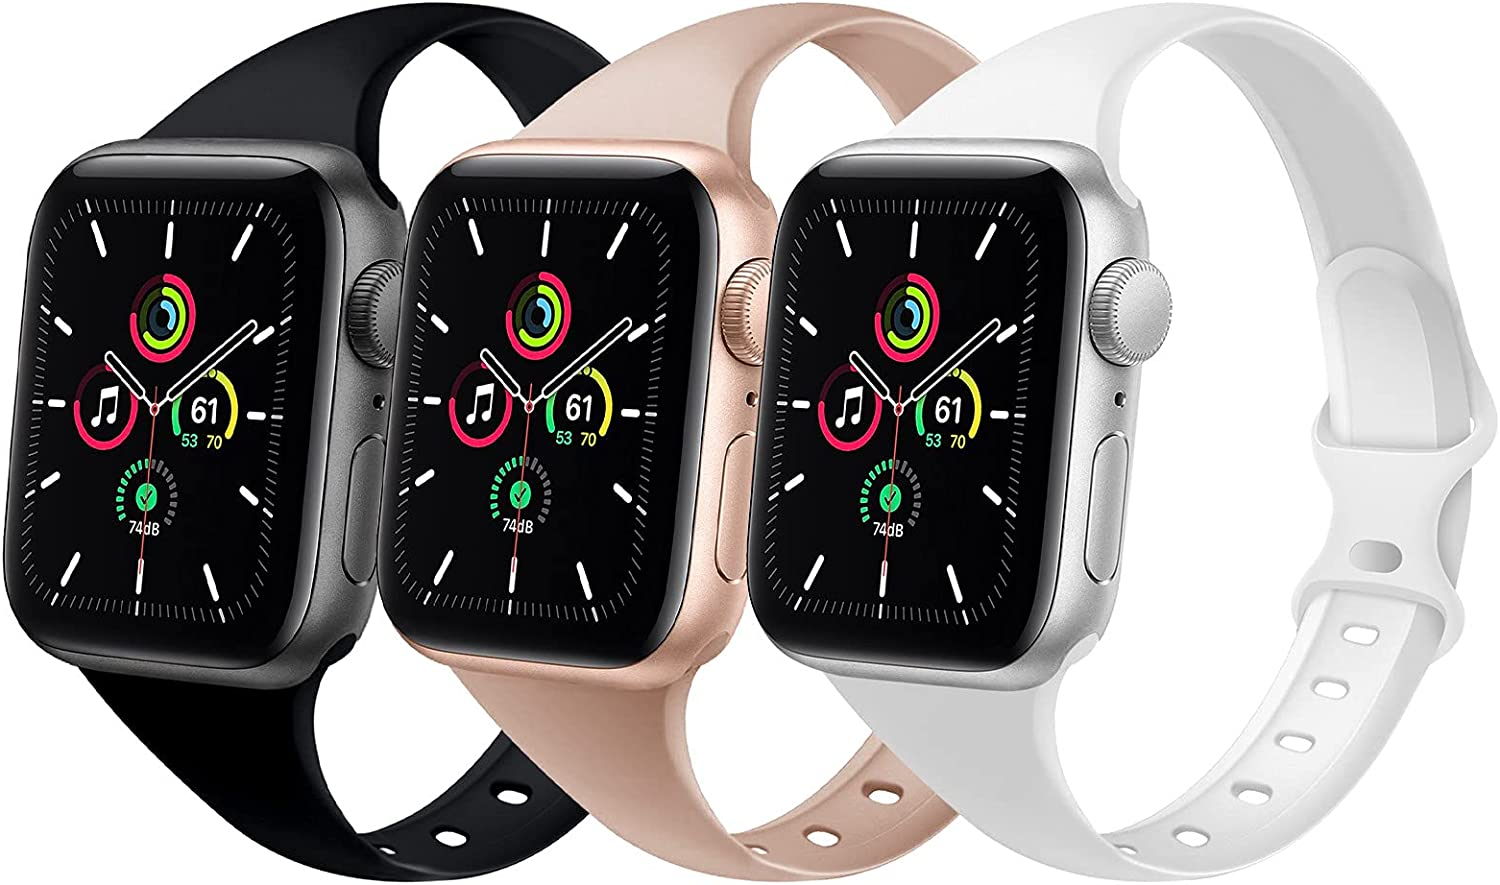 DYKEISS 3 Pack Sport Slim Silicone Band Compatible for Apple Watch Band 38mm 42mm 40mm 44mm, Thin Soft Narrow Replacement Strap Wristband for iWatch Series SE/6/5/4/3/2/1 Women Men